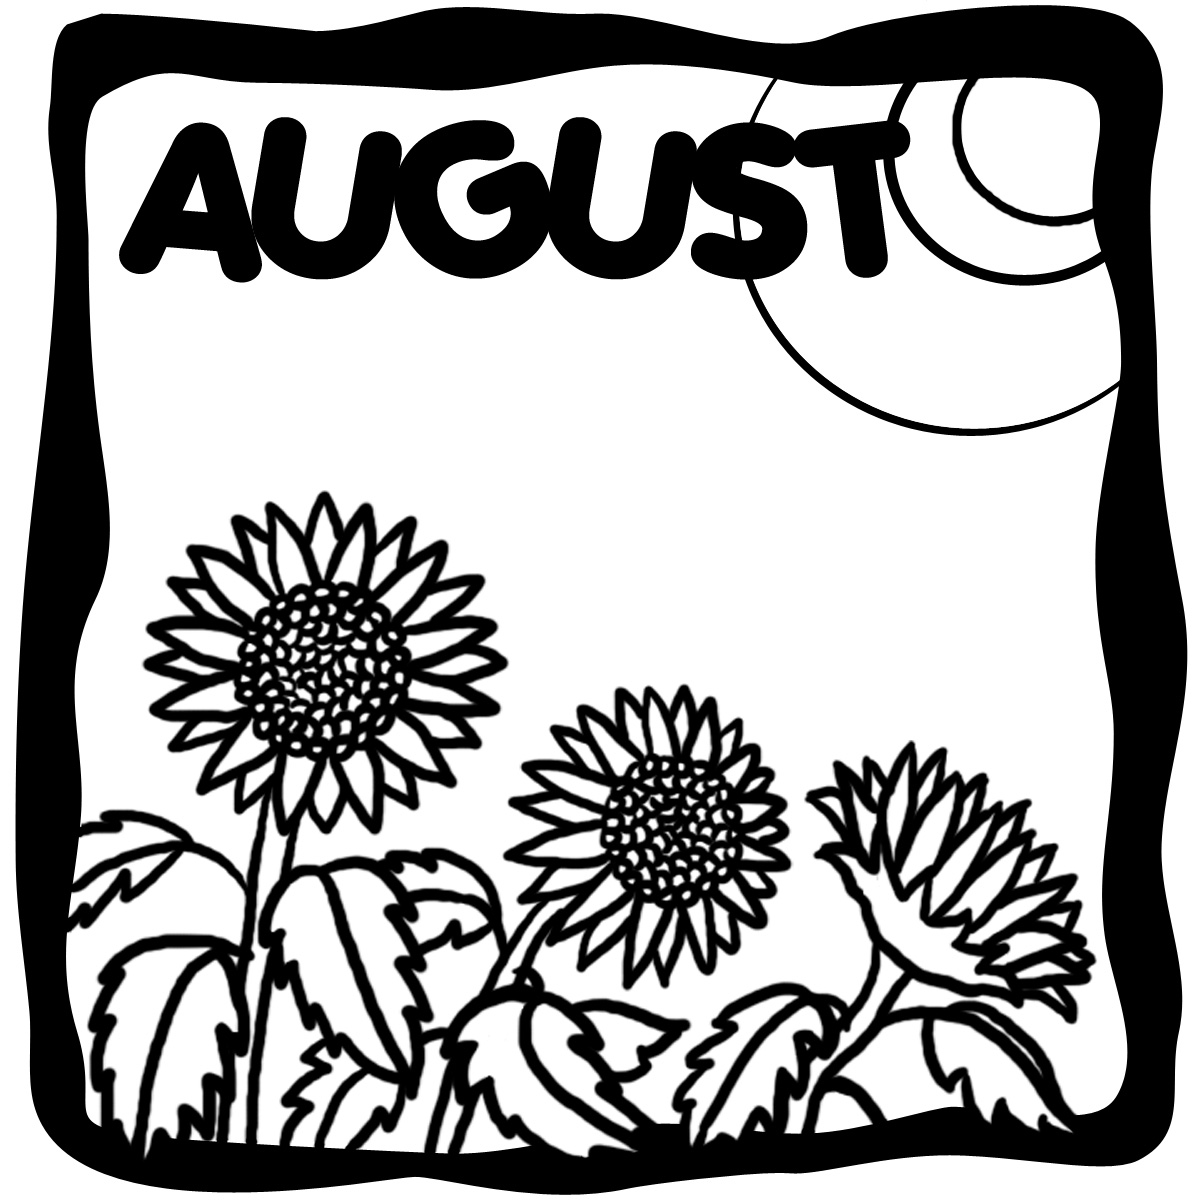 1200x1200 August Welcome Back To School Clipart Image